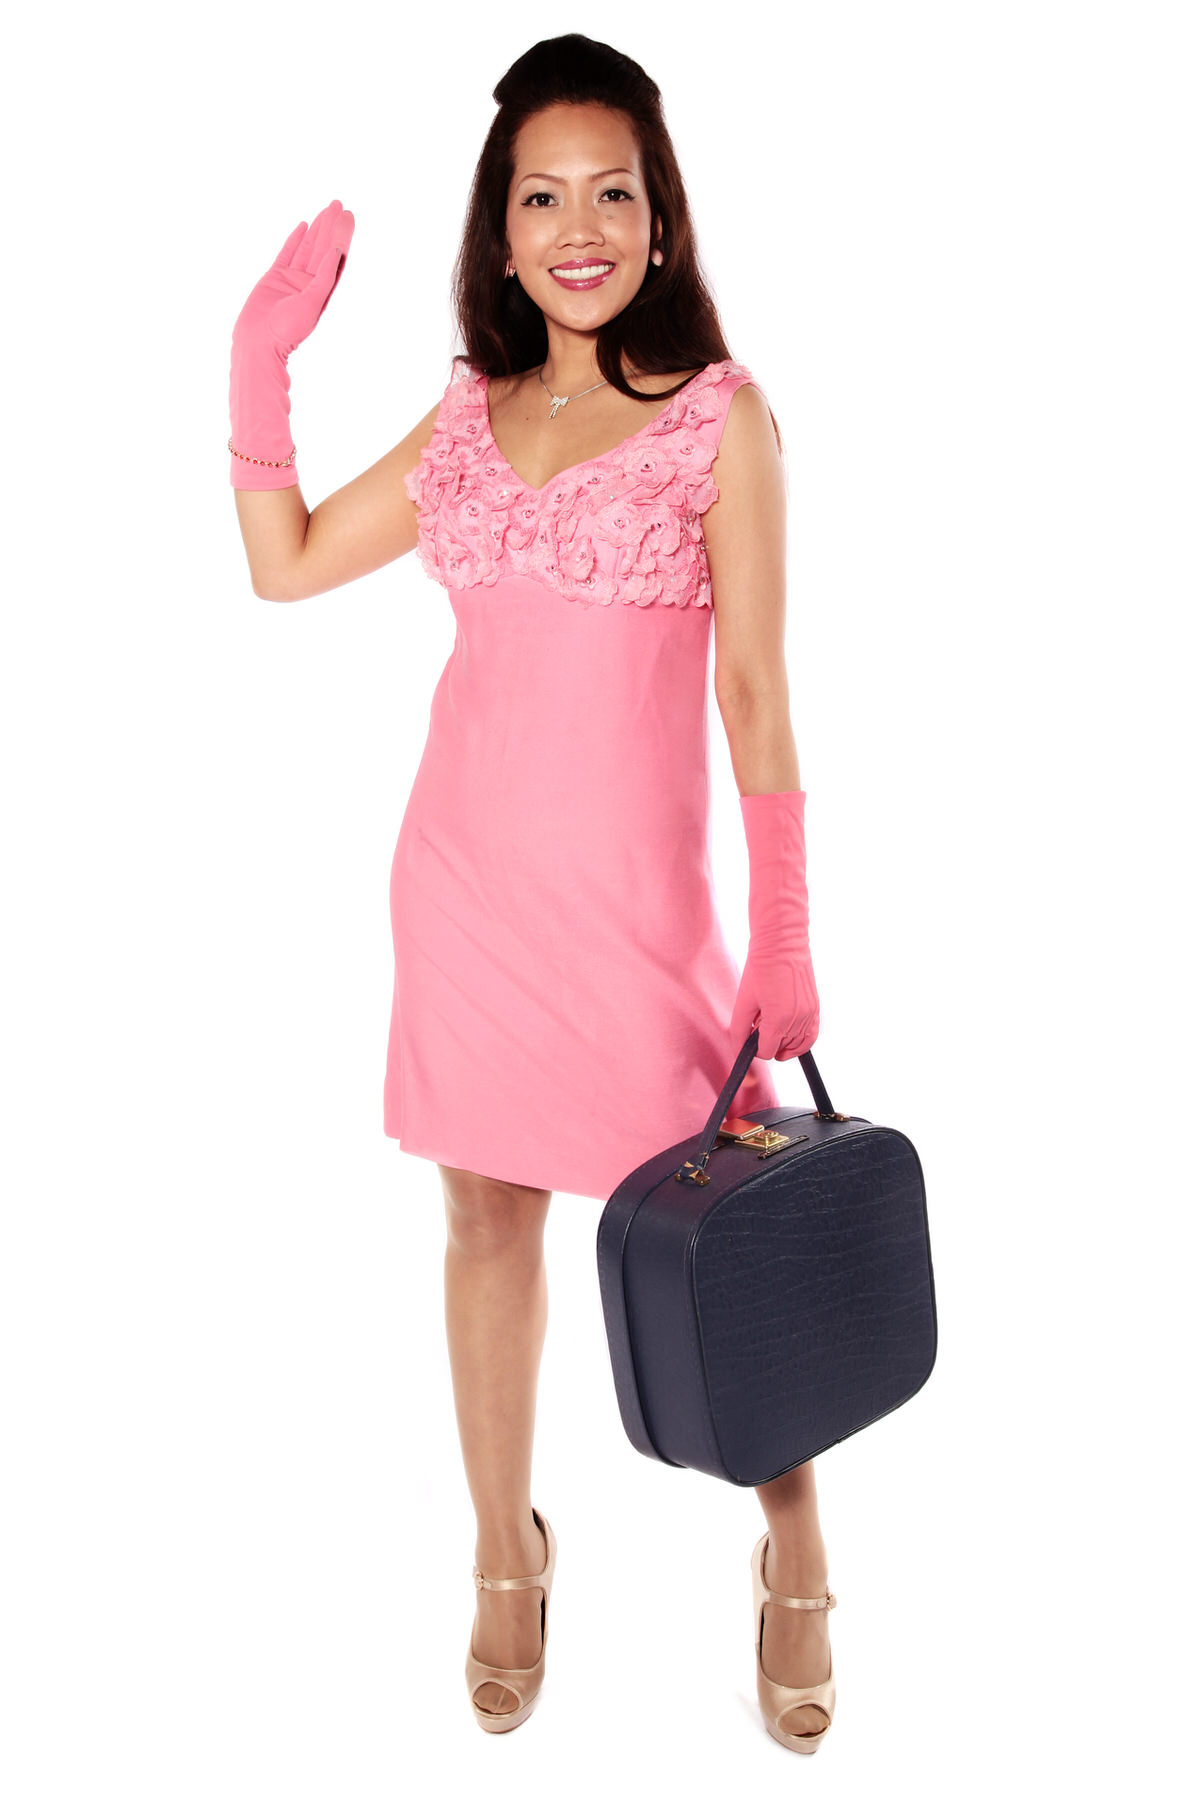 PINK 60s MINI DRESS COSTUME W MATCHING GLOVES